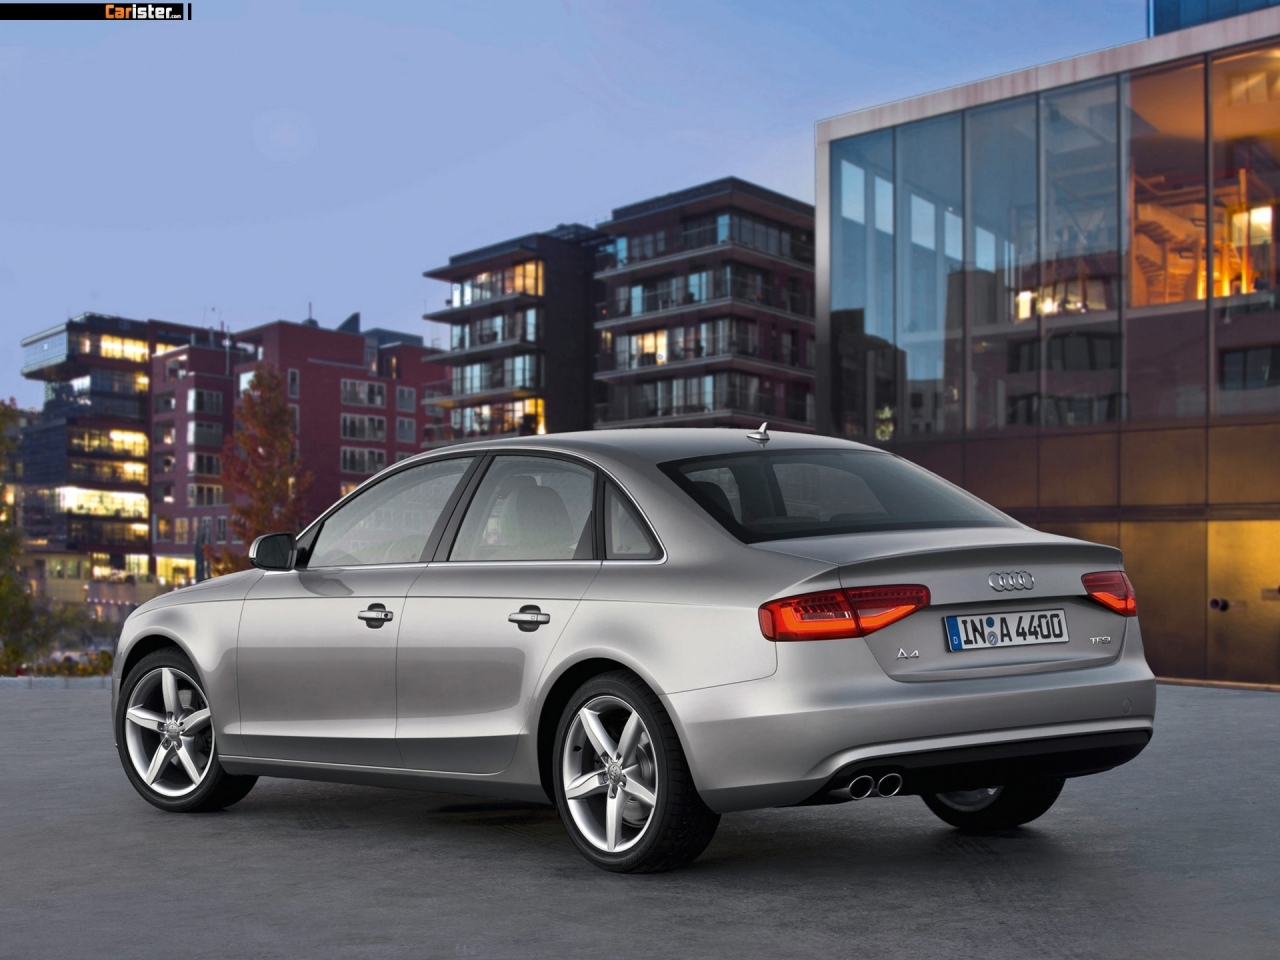 Audi A4 2012 - Photo 20 - Taille: 1280x960